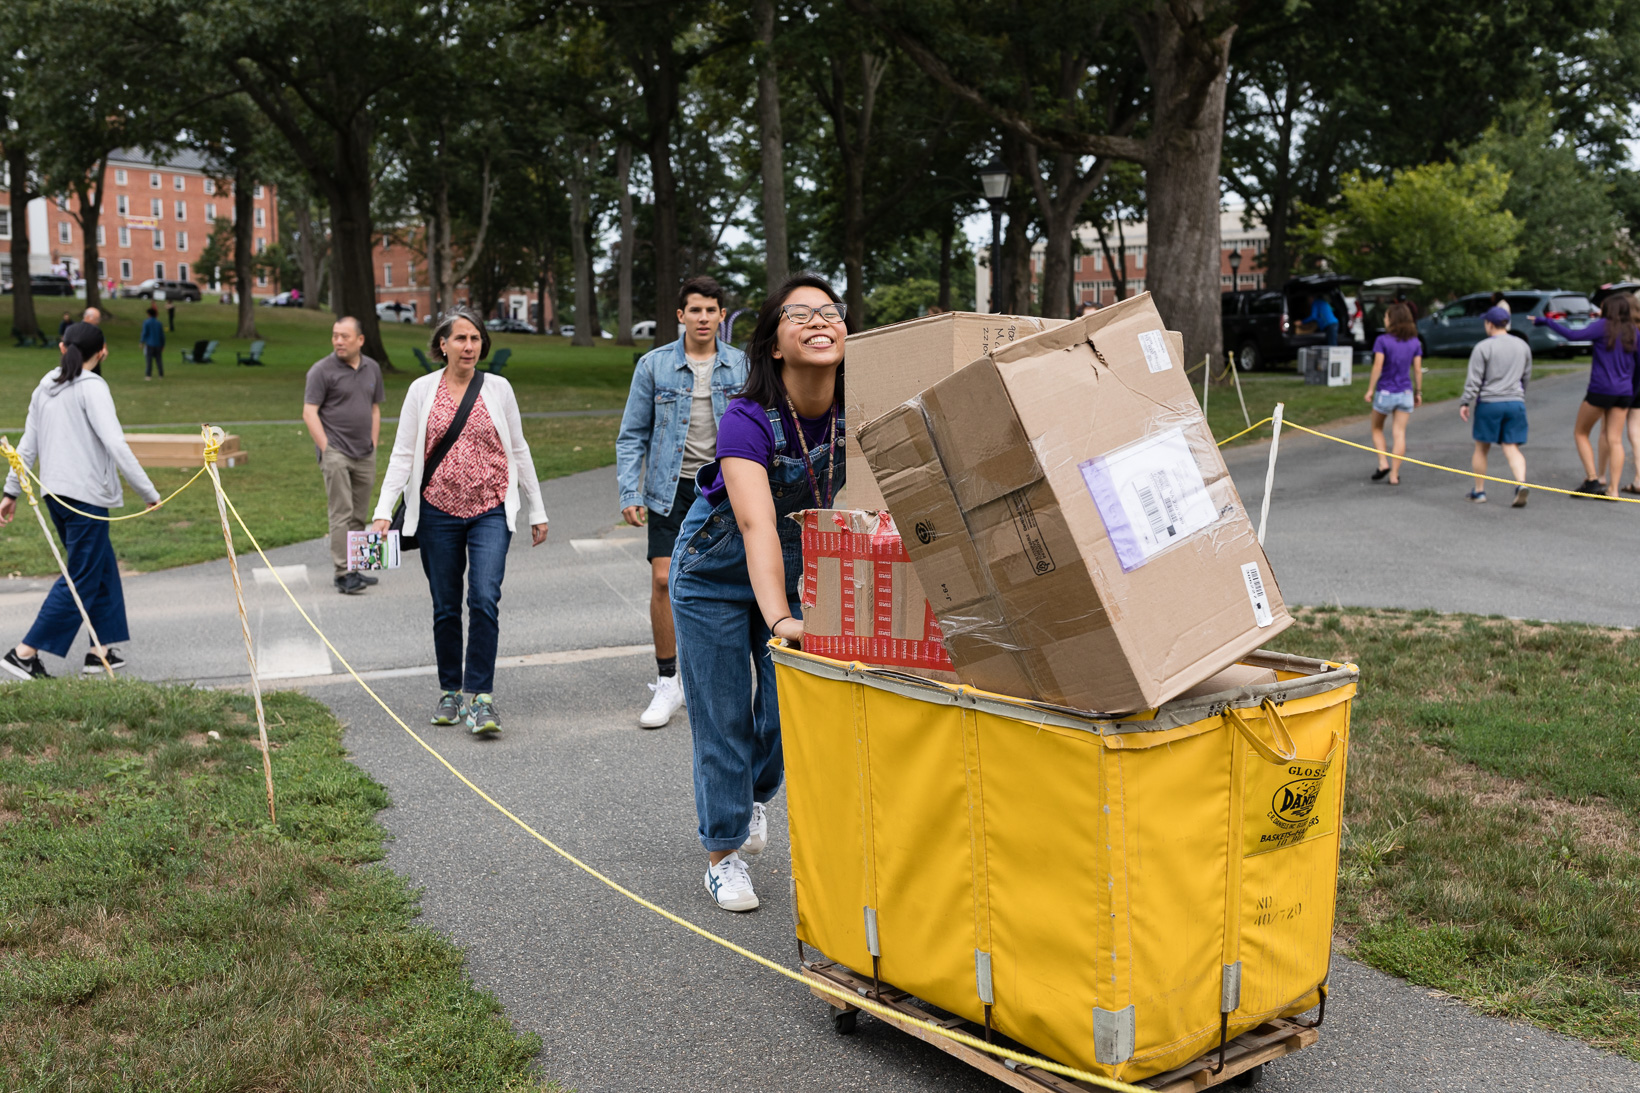 Students pushing carts full of belongings on move-in day.